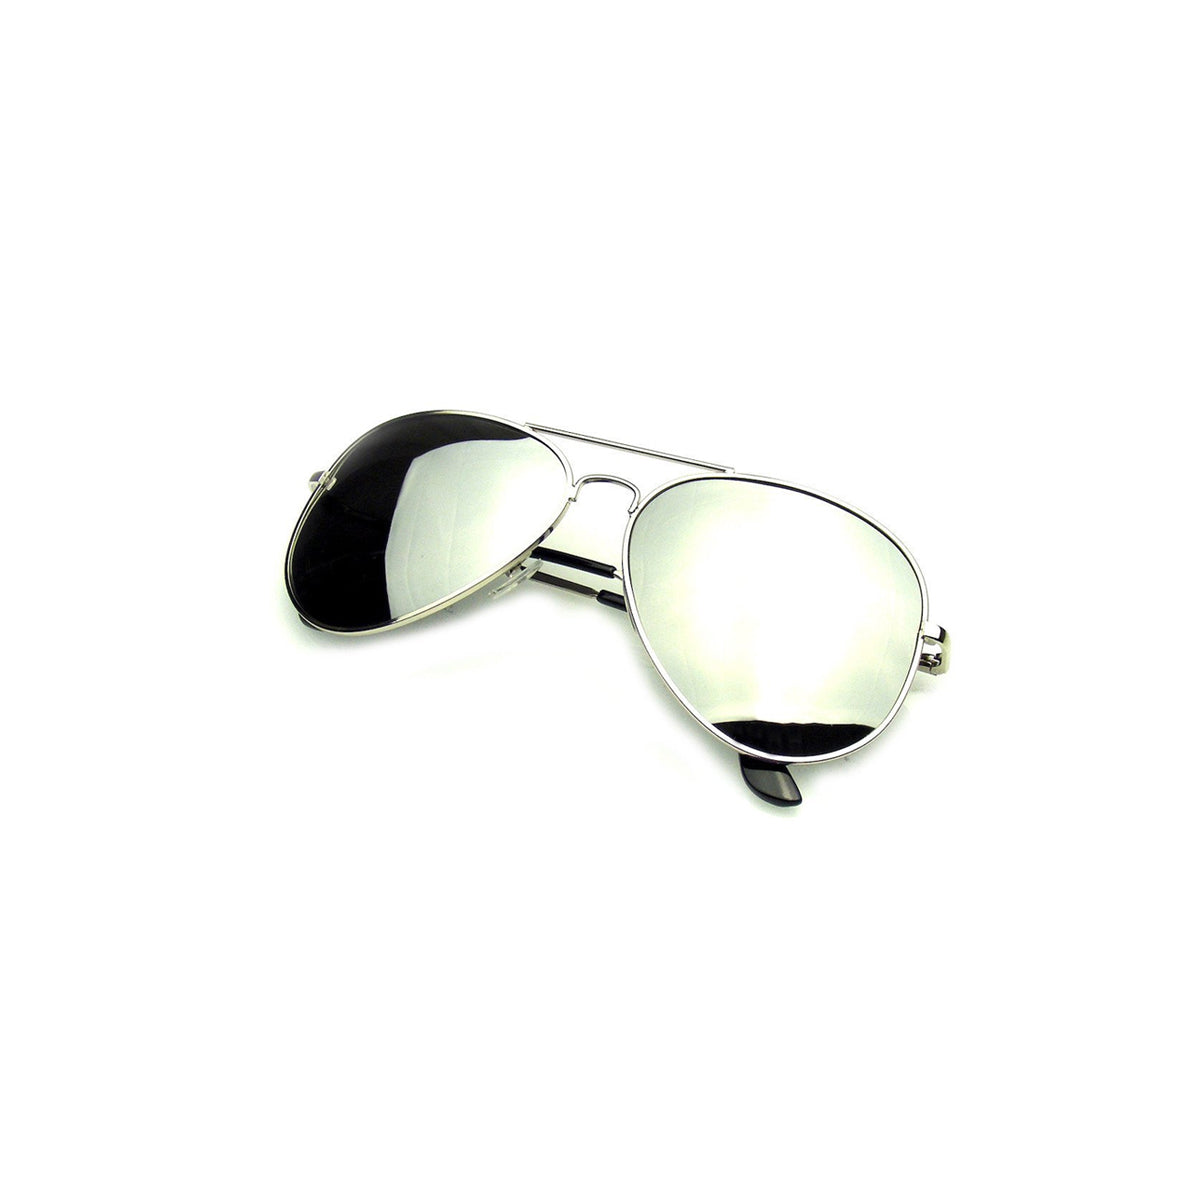 shopify-Vintage Style Aviator Mirrored Sunglasses - Silver, Blue, Black, Pink or Bronze-7